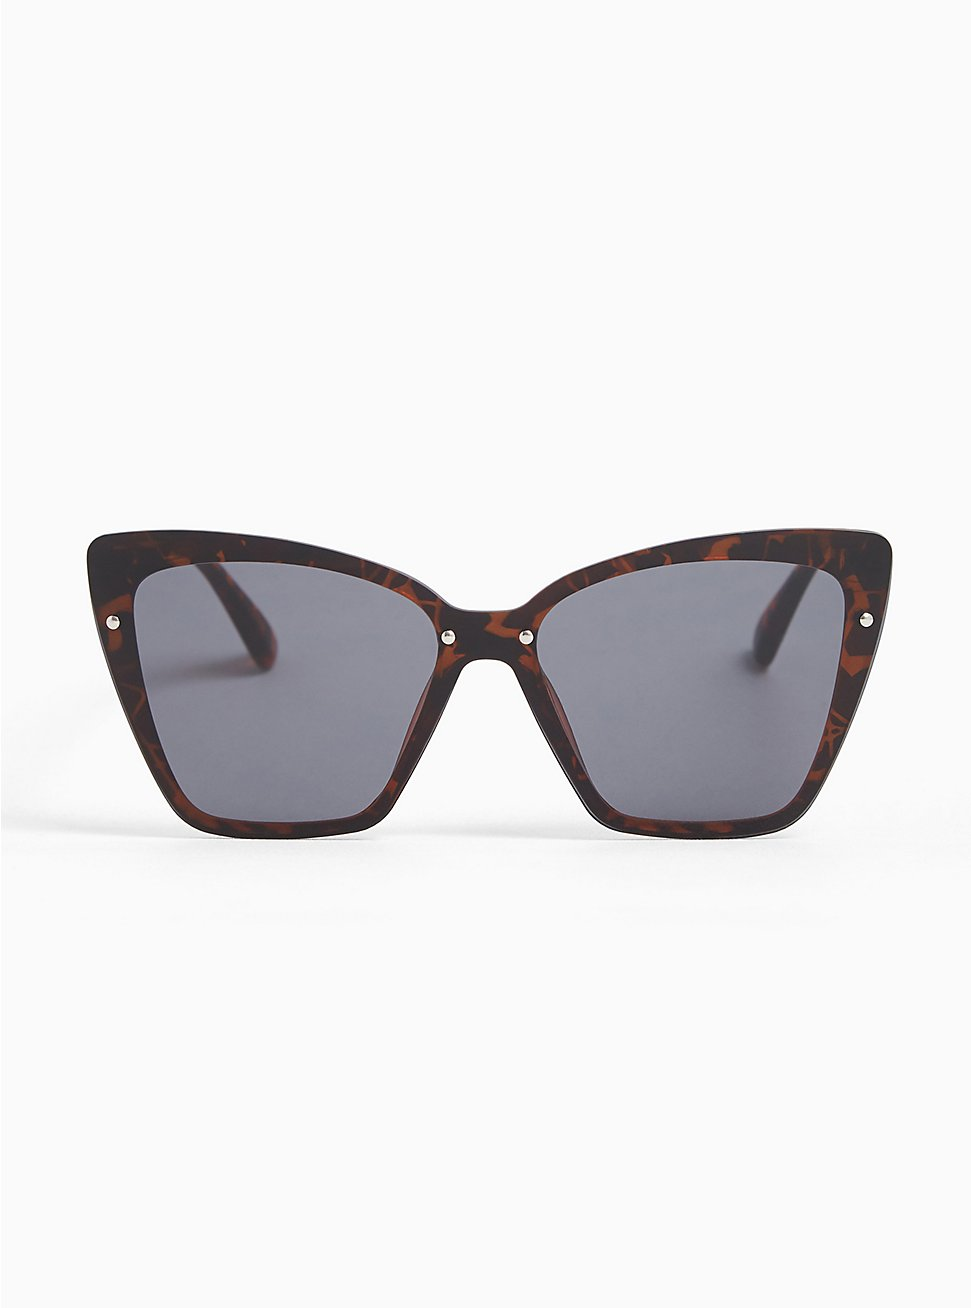 Tortoiseshell Cat Eye Sunglasses, , hi-res